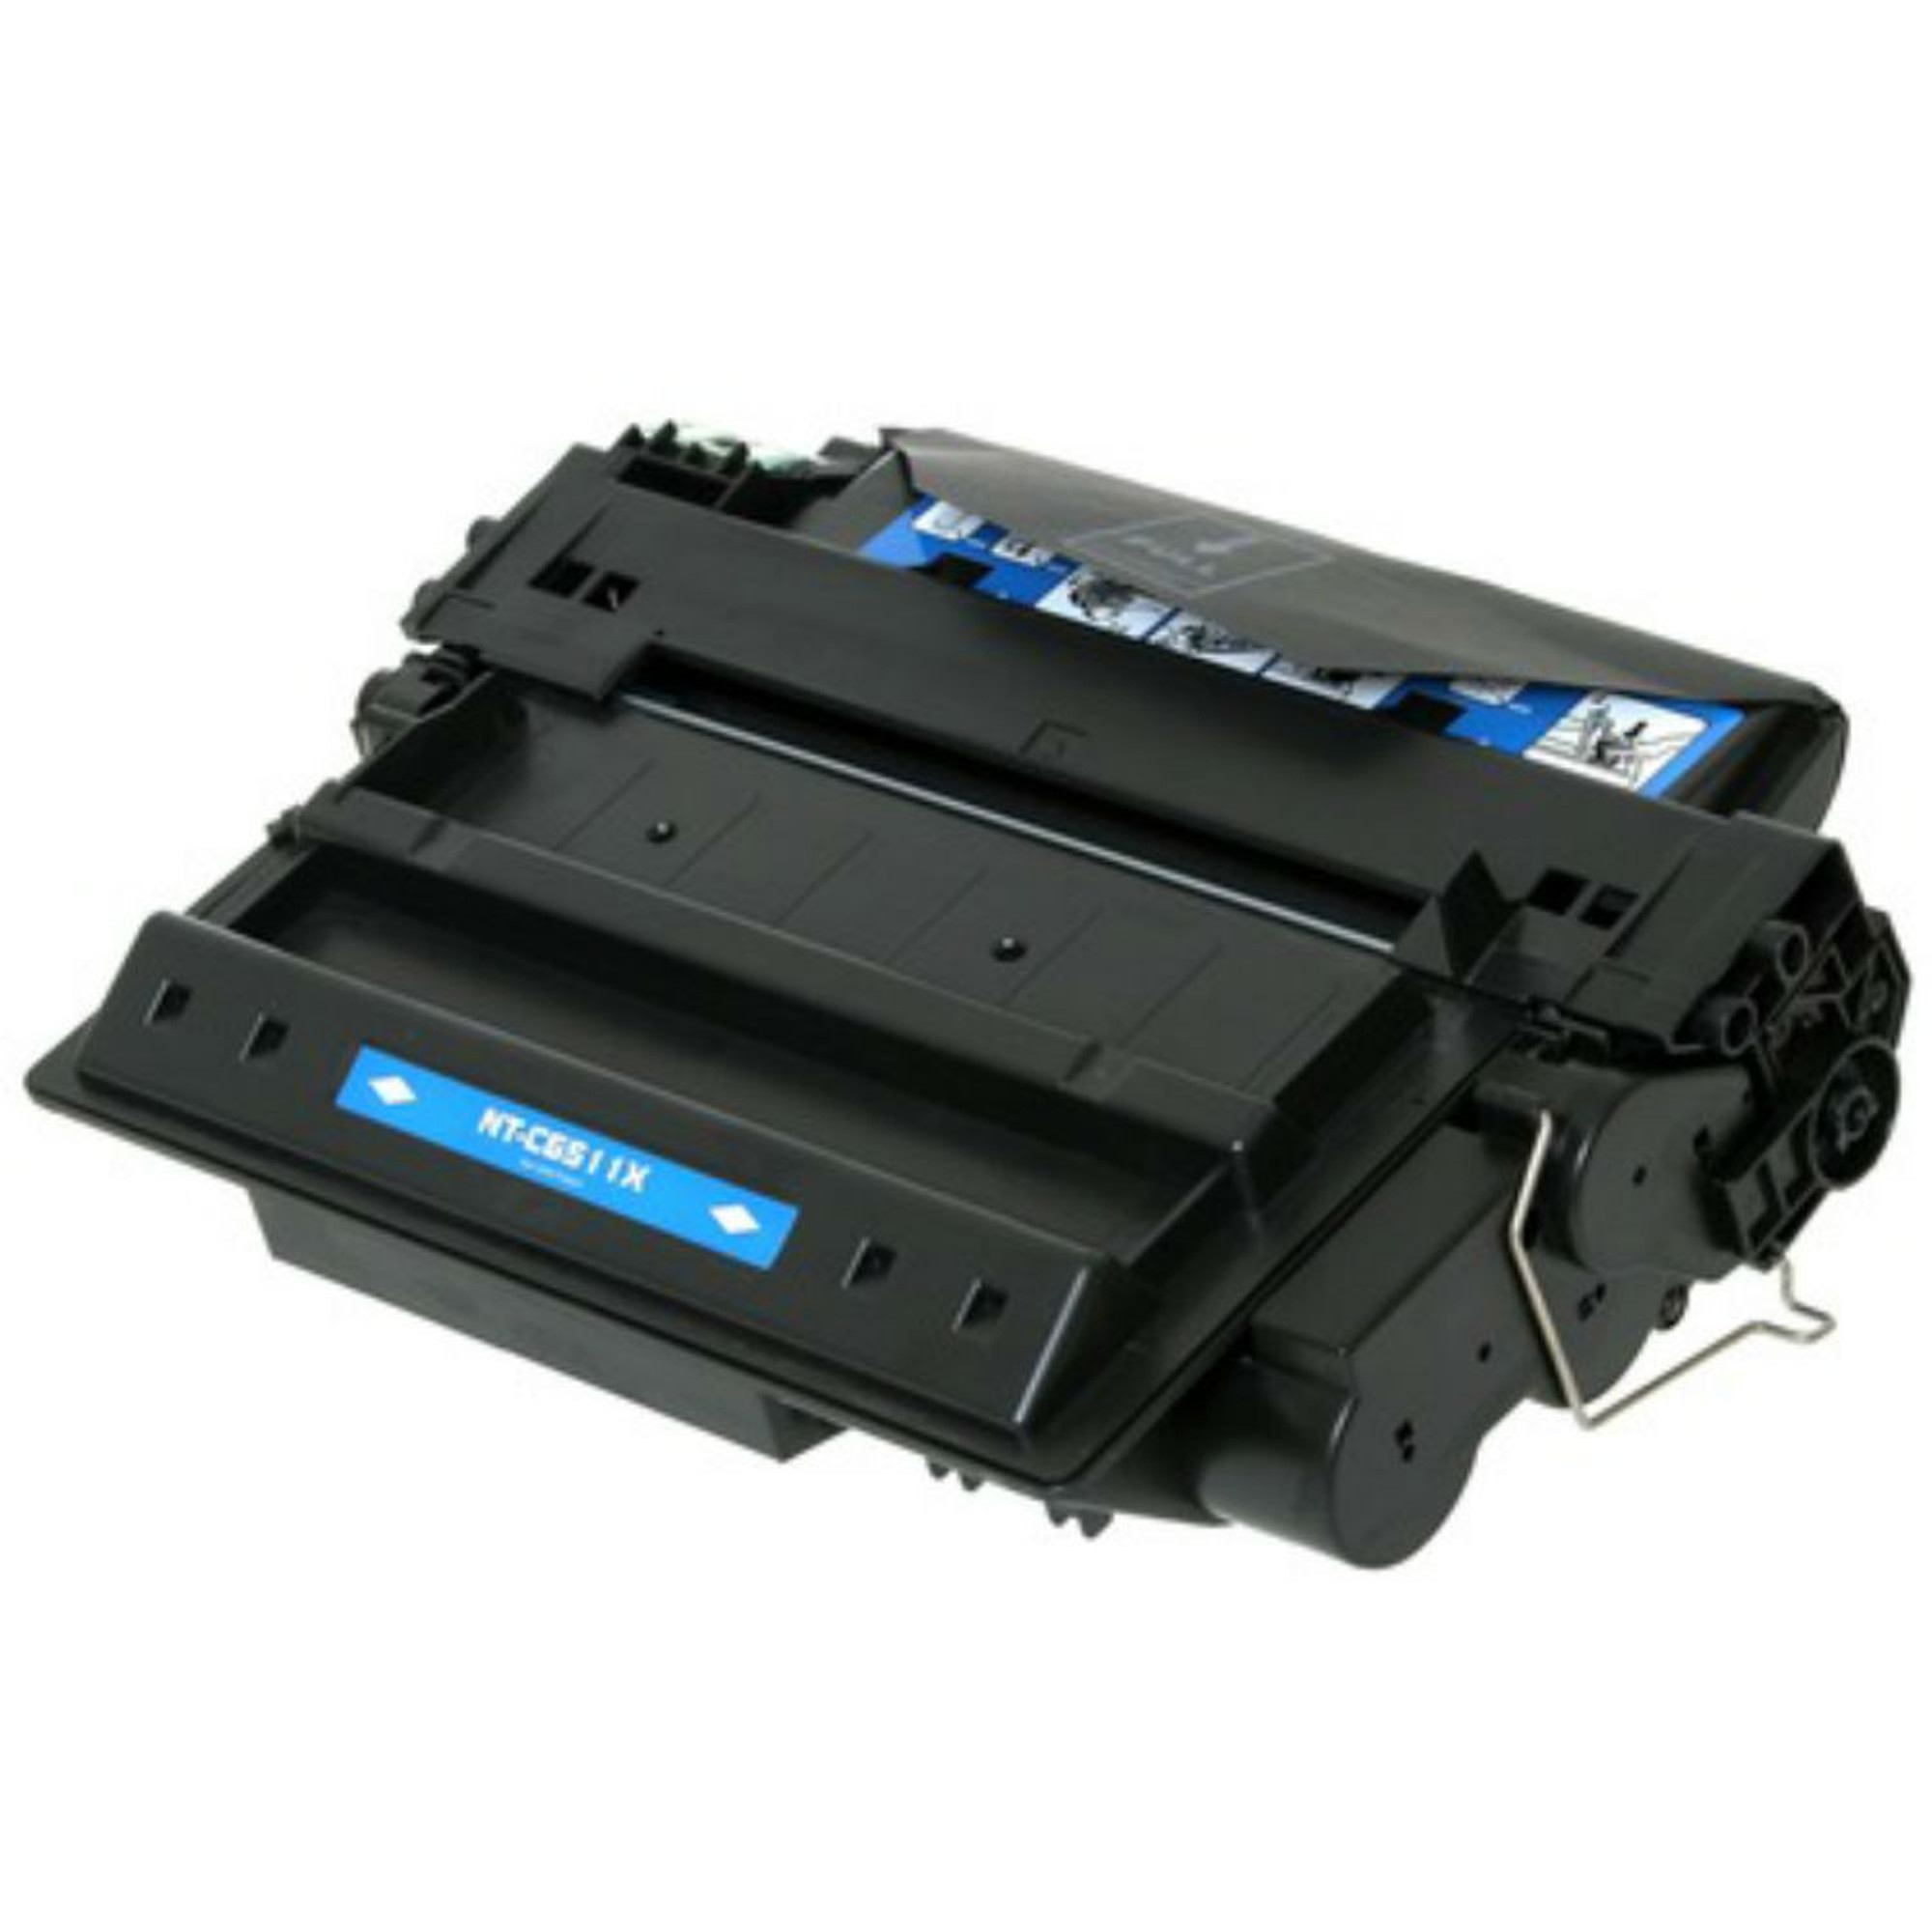 HP 2420DN PRINTER DRIVER FOR WINDOWS MAC